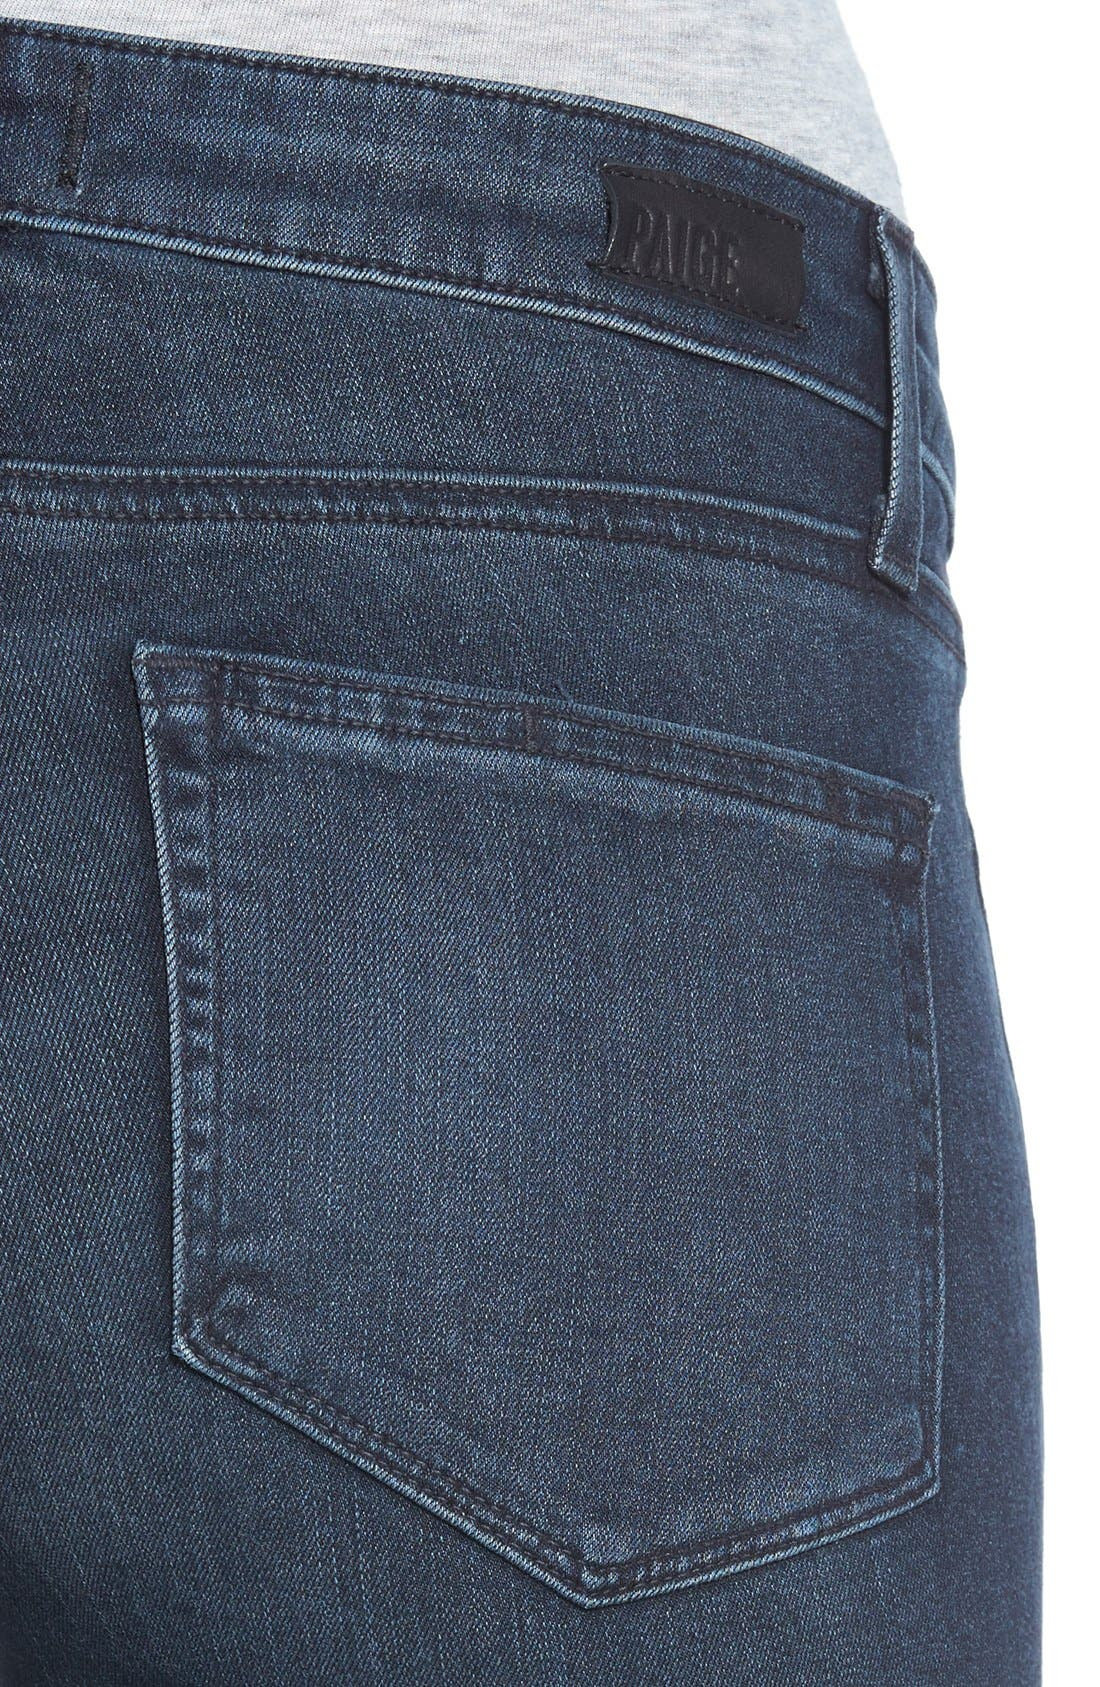 Denim 'Jill' Ultra Skinny Jeans,                             Alternate thumbnail 4, color,                             Reed No Whiskers